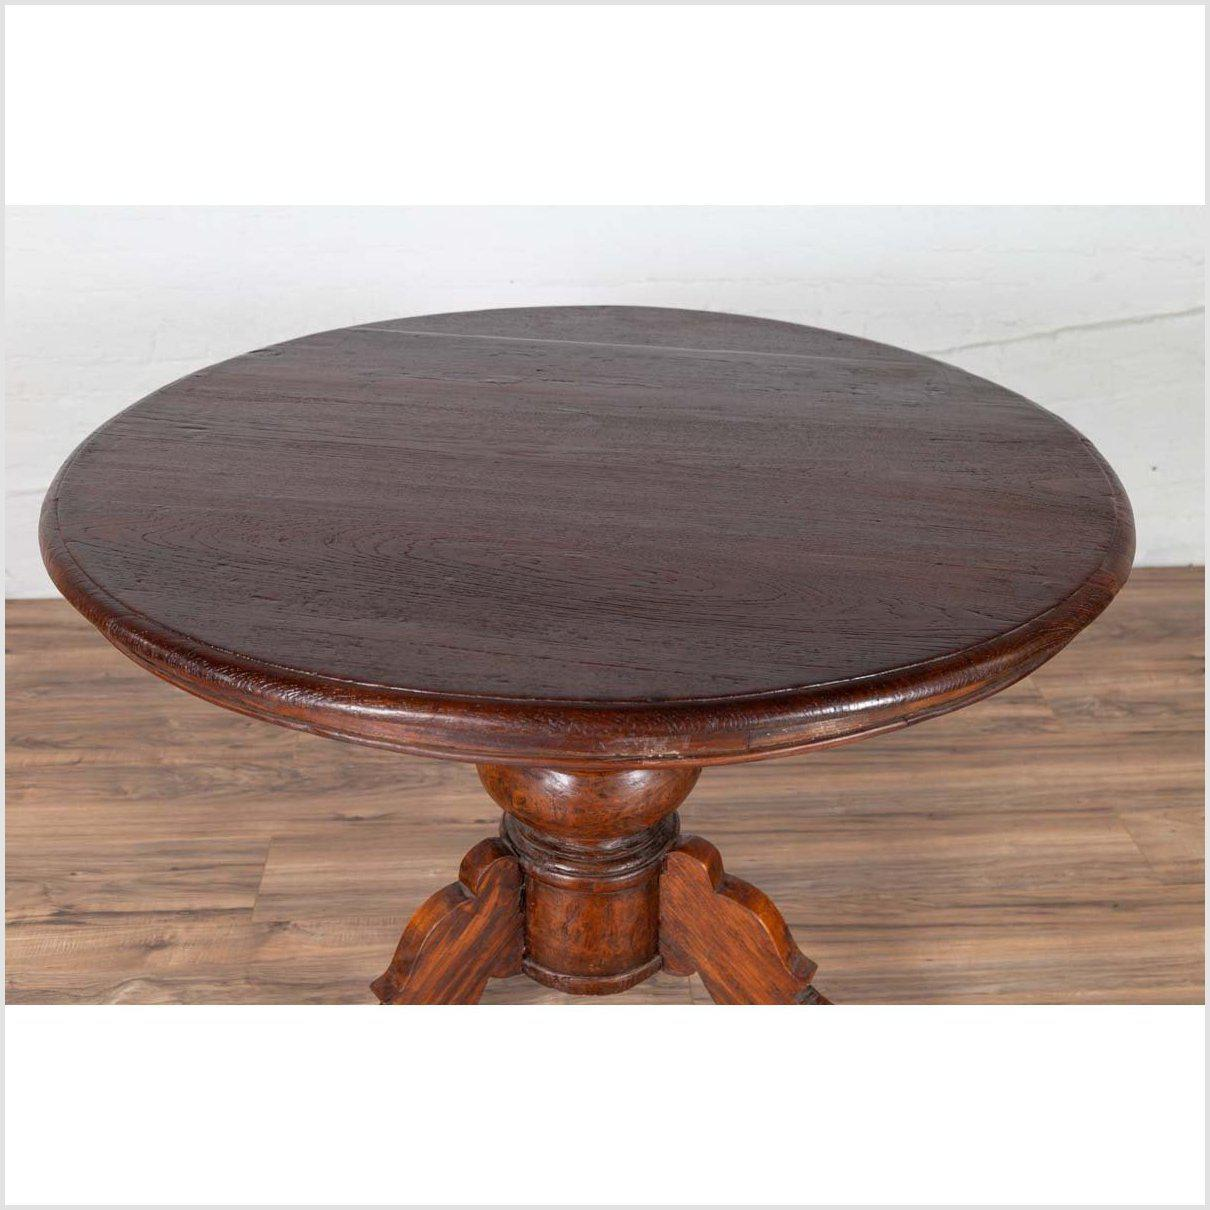 Dutch Colonial Javanese Pedestal Tripod Table with Circular Top and Turned Base